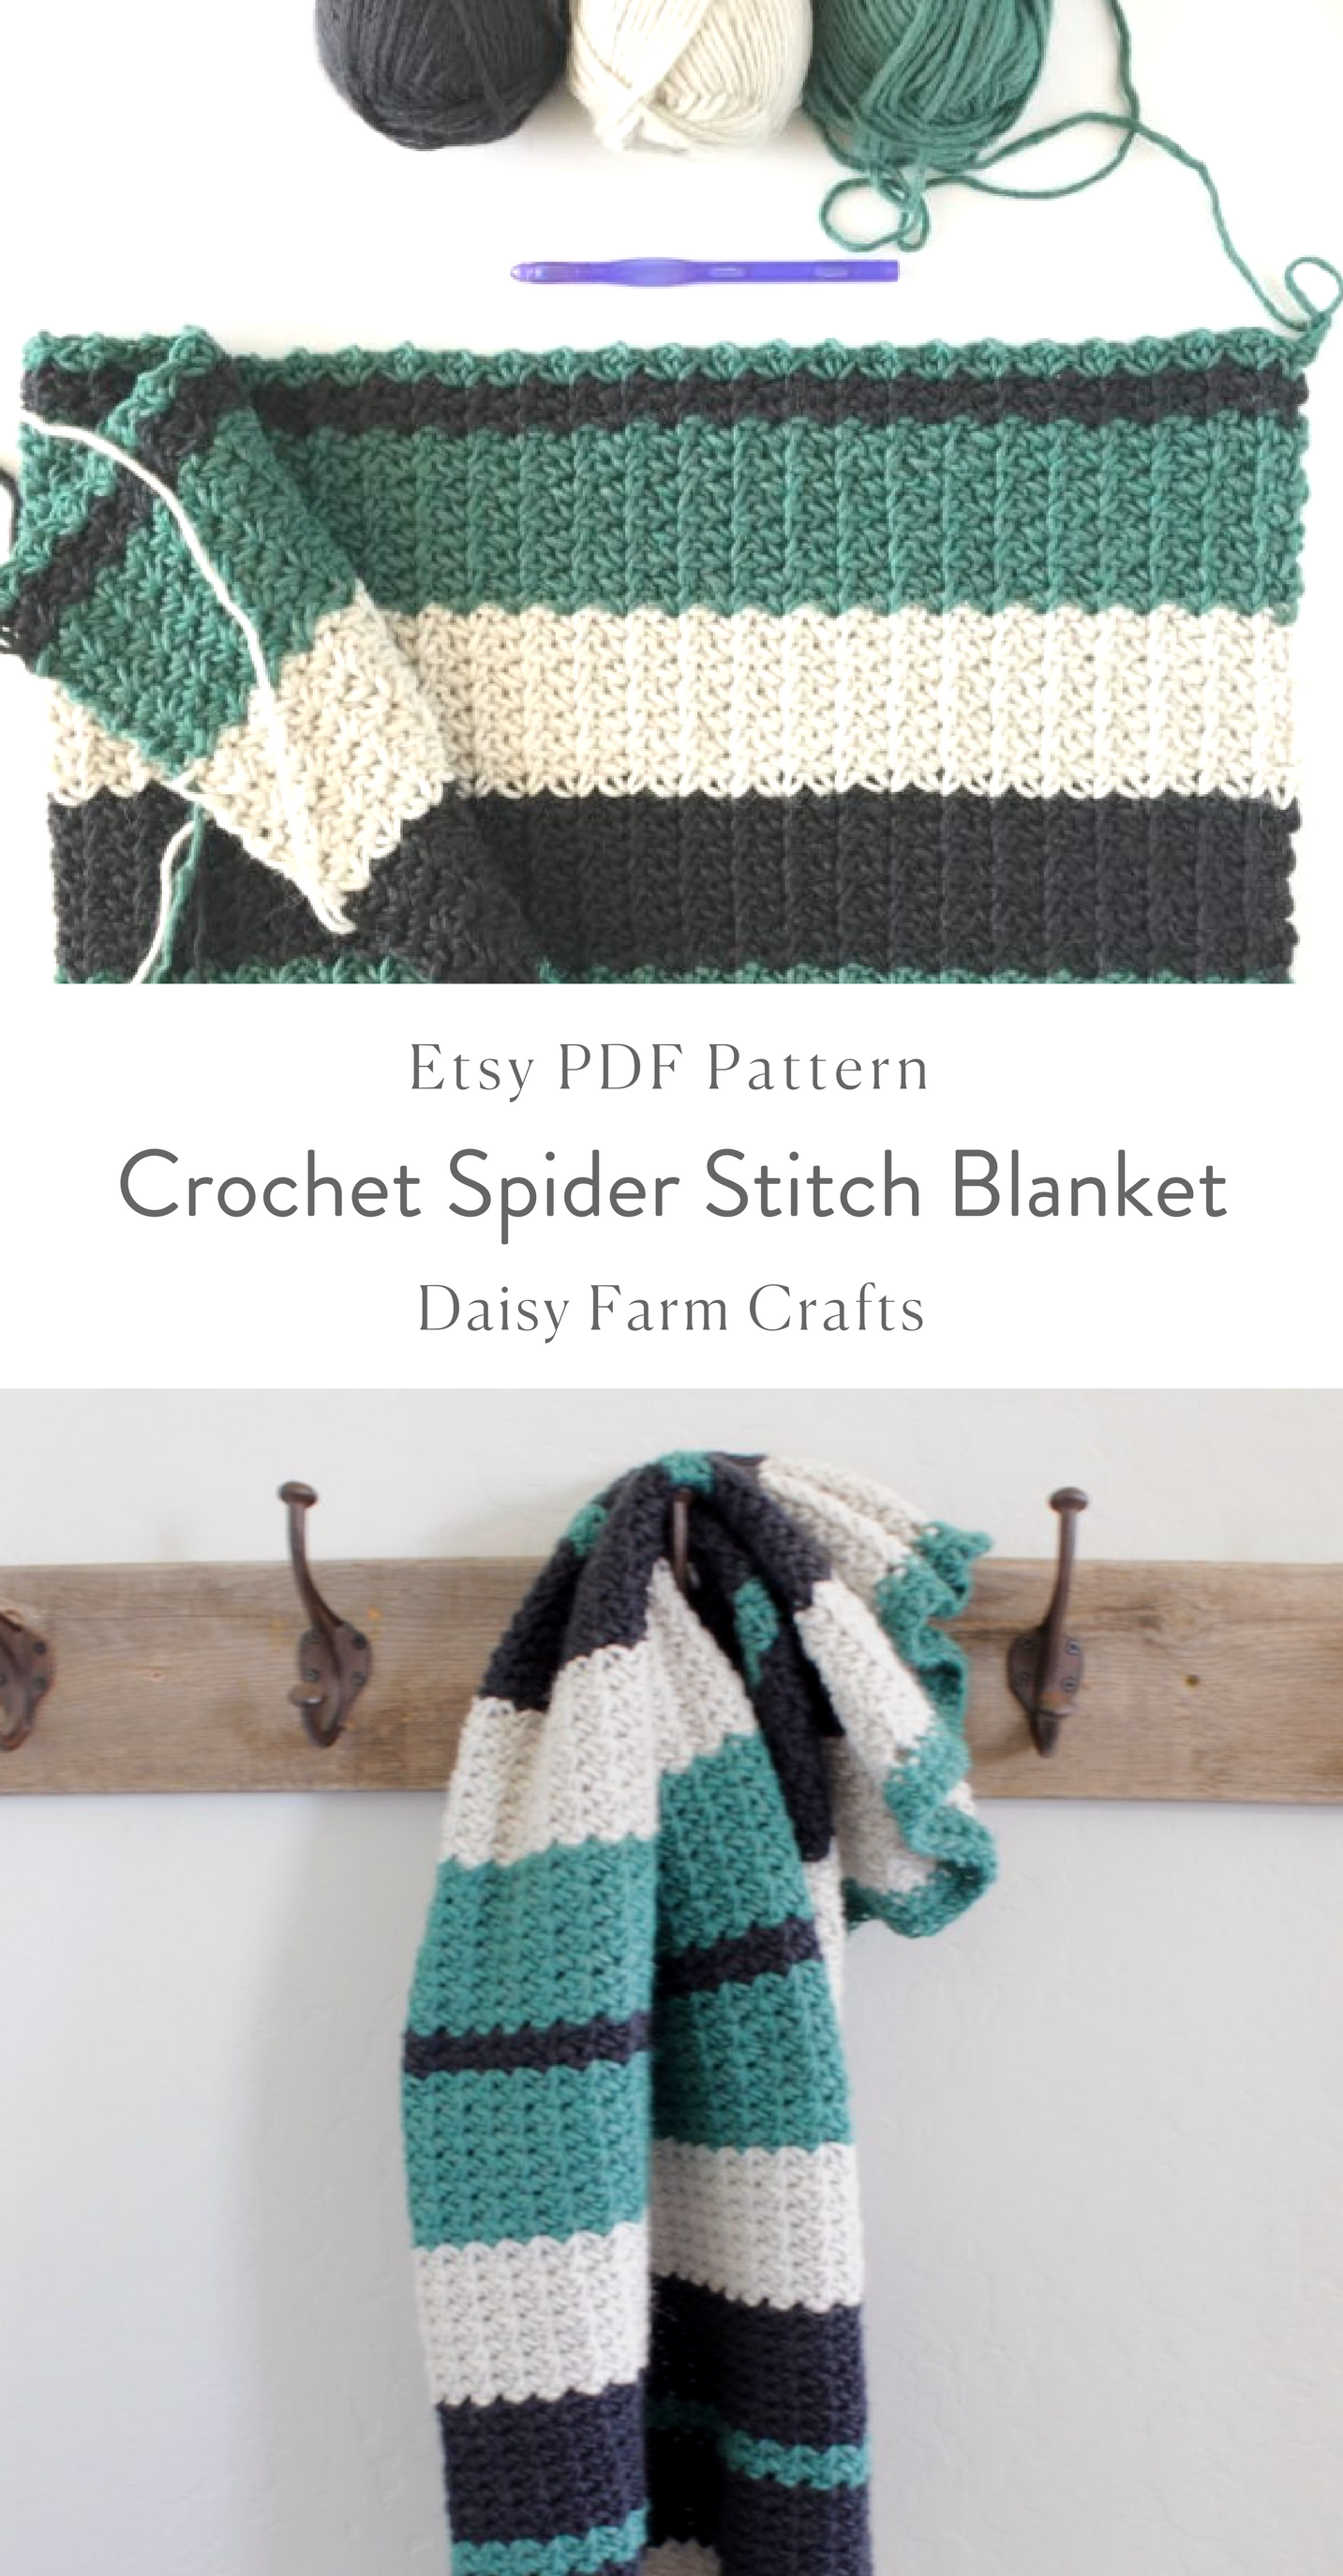 Crochet Spider Stitch Blanket Pattern | New | Pinterest | Cobija ...